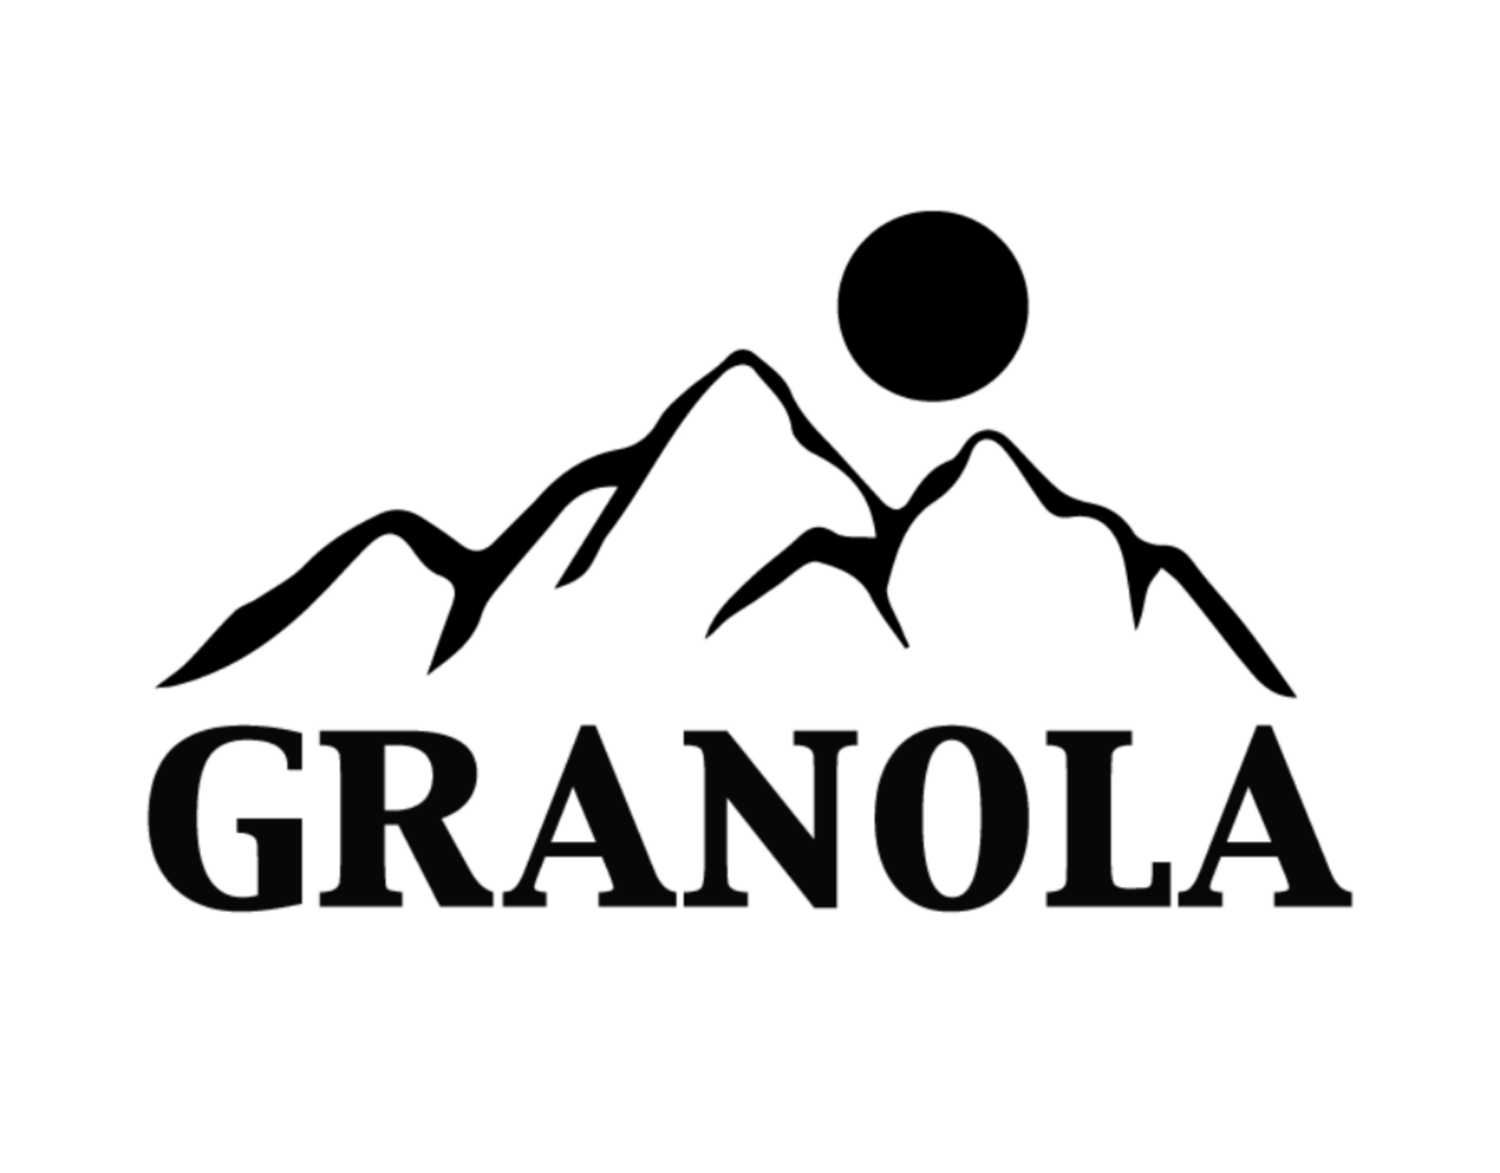 American Made backpacks, bags, and accessories | Granola